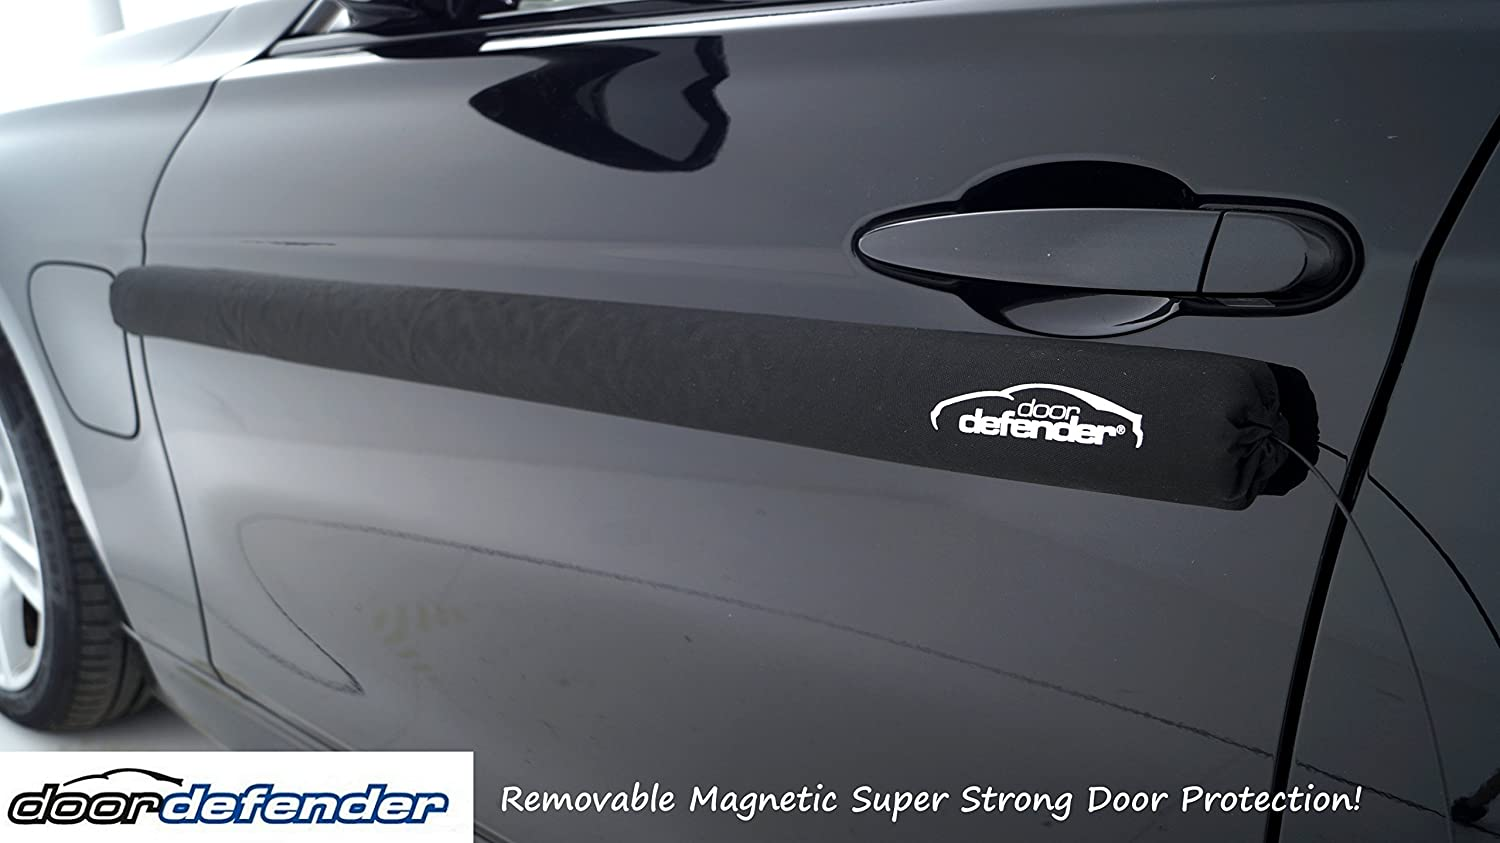 Doordefender MAXI - magnetic removable car door protection van dent protector vehicle ding protectors car guard car edge barrier cars trim protect ... & Doordefender MAXI - magnetic removable car door protection van dent ...